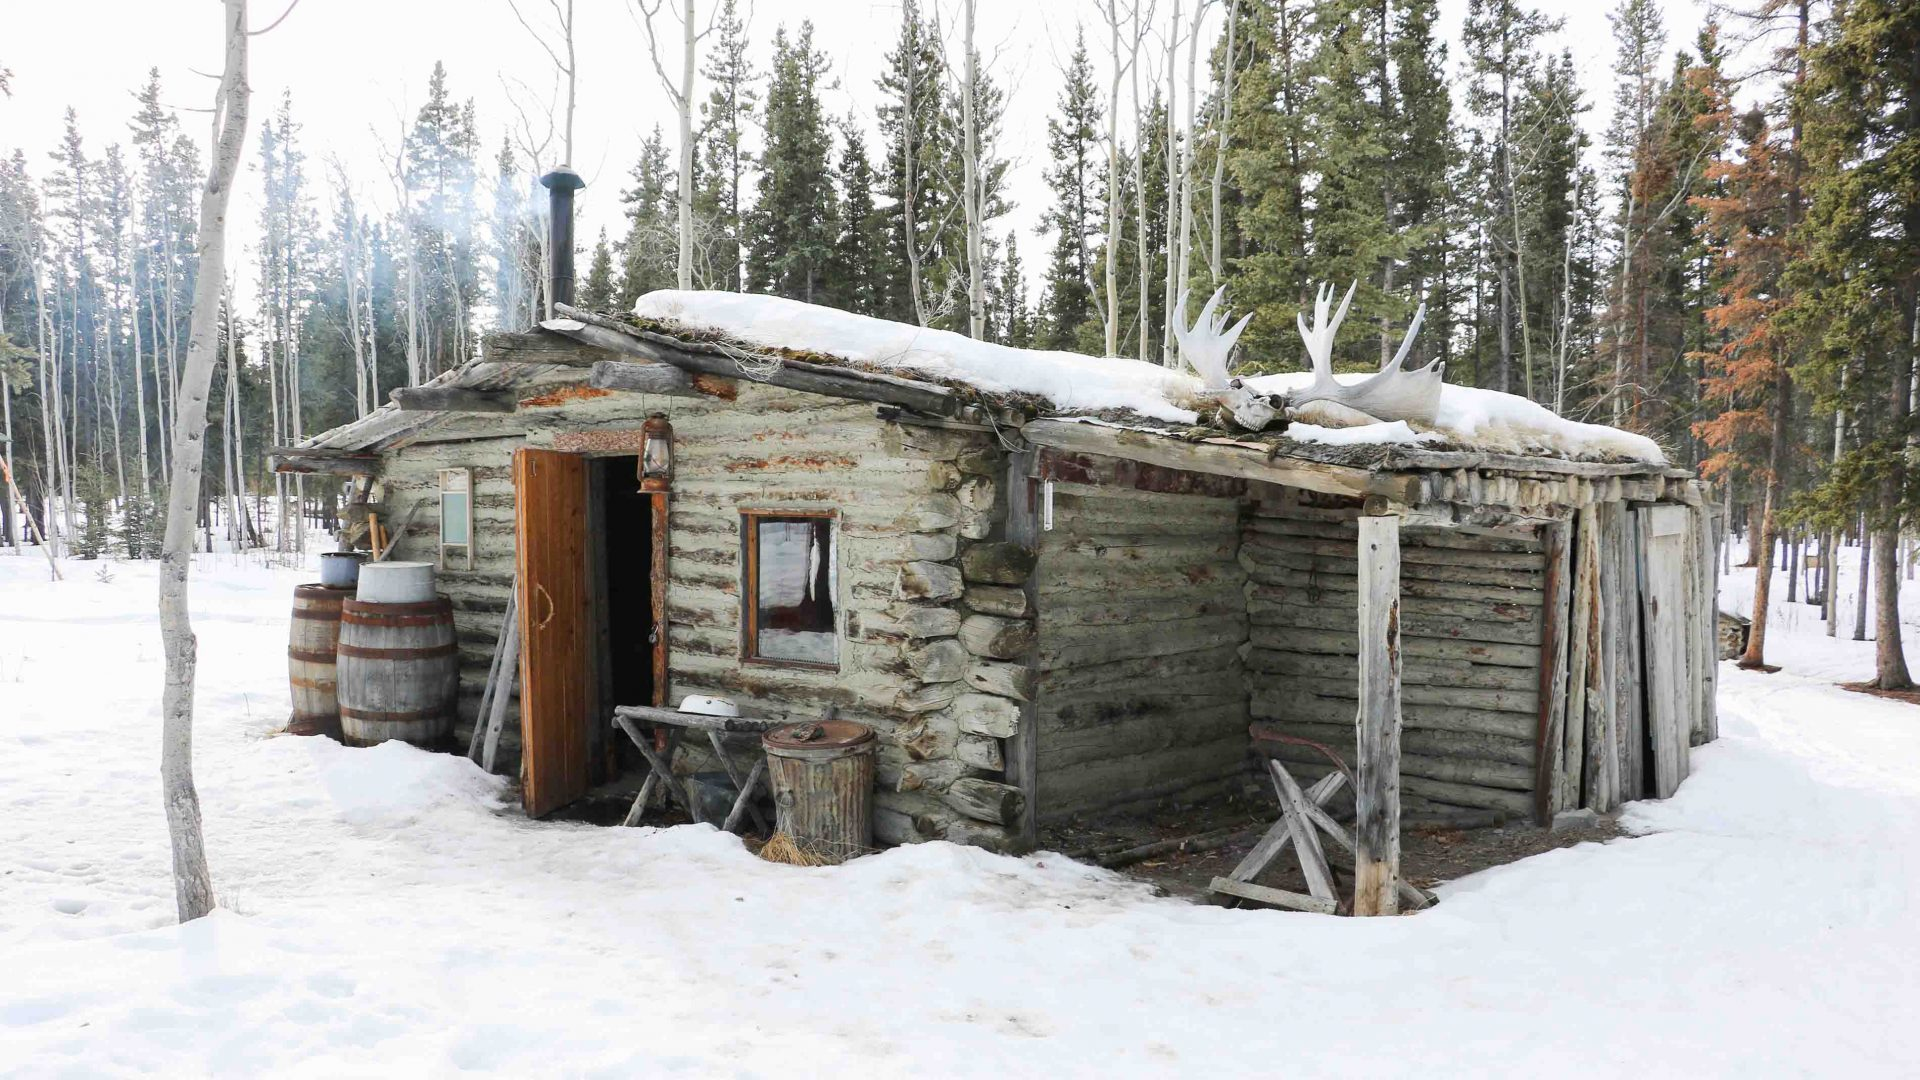 A trapper's cabin with antlers on its roof in the Yukon.